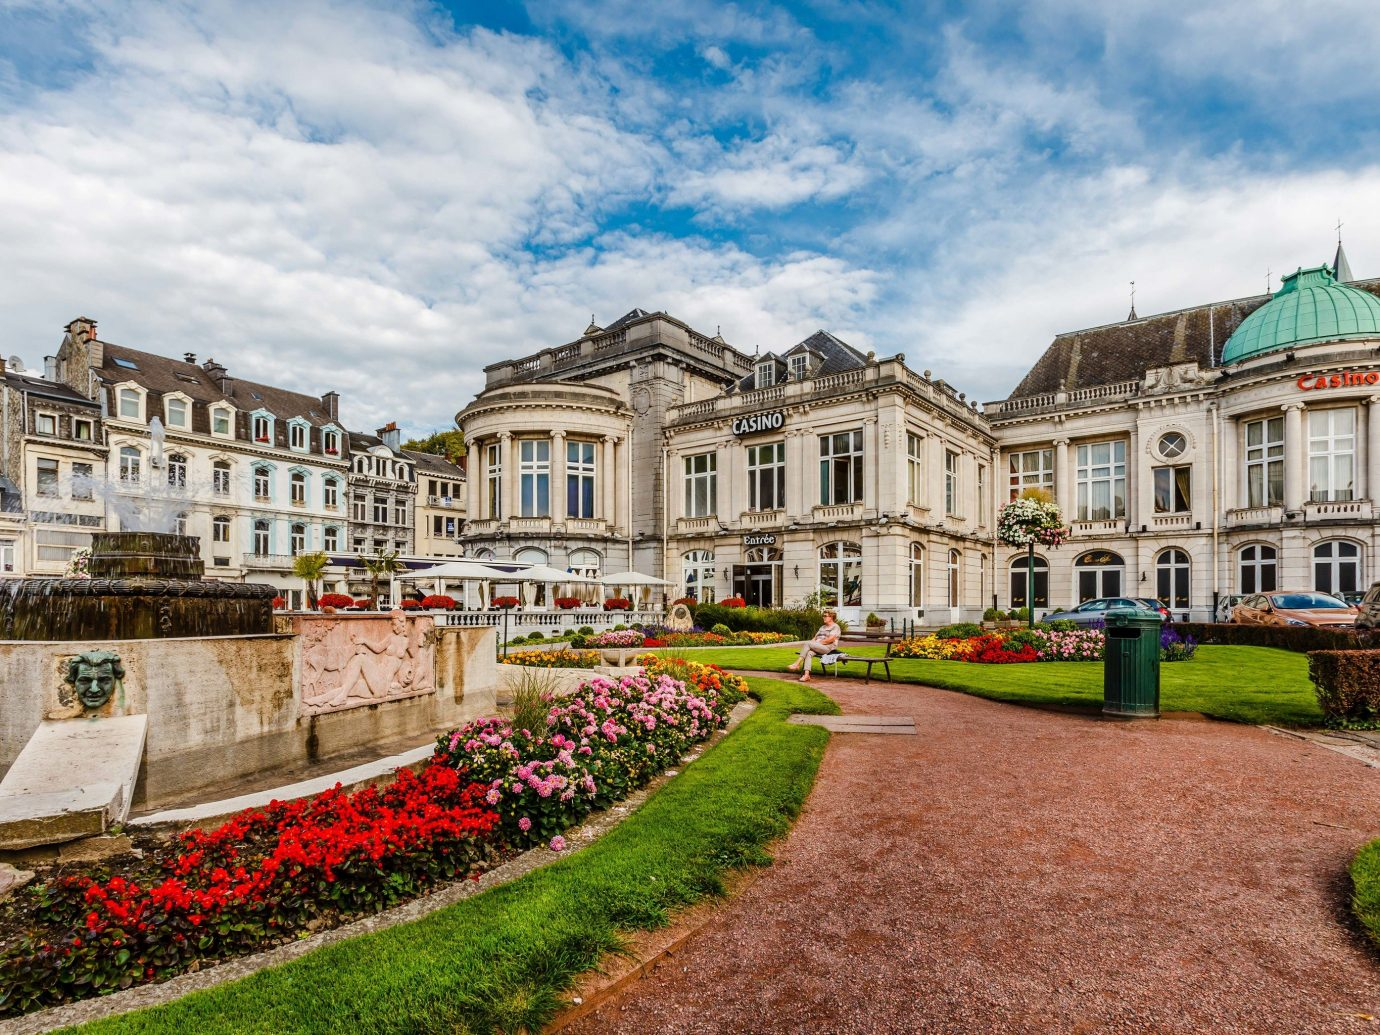 Health + Wellness Luxury Travel Trip Ideas grass sky outdoor landmark palace building estate stately home mansion château tree daytime City tourist attraction green house tourism facade real estate national trust for places of historic interest or natural beauty plaza town square old landscape stone